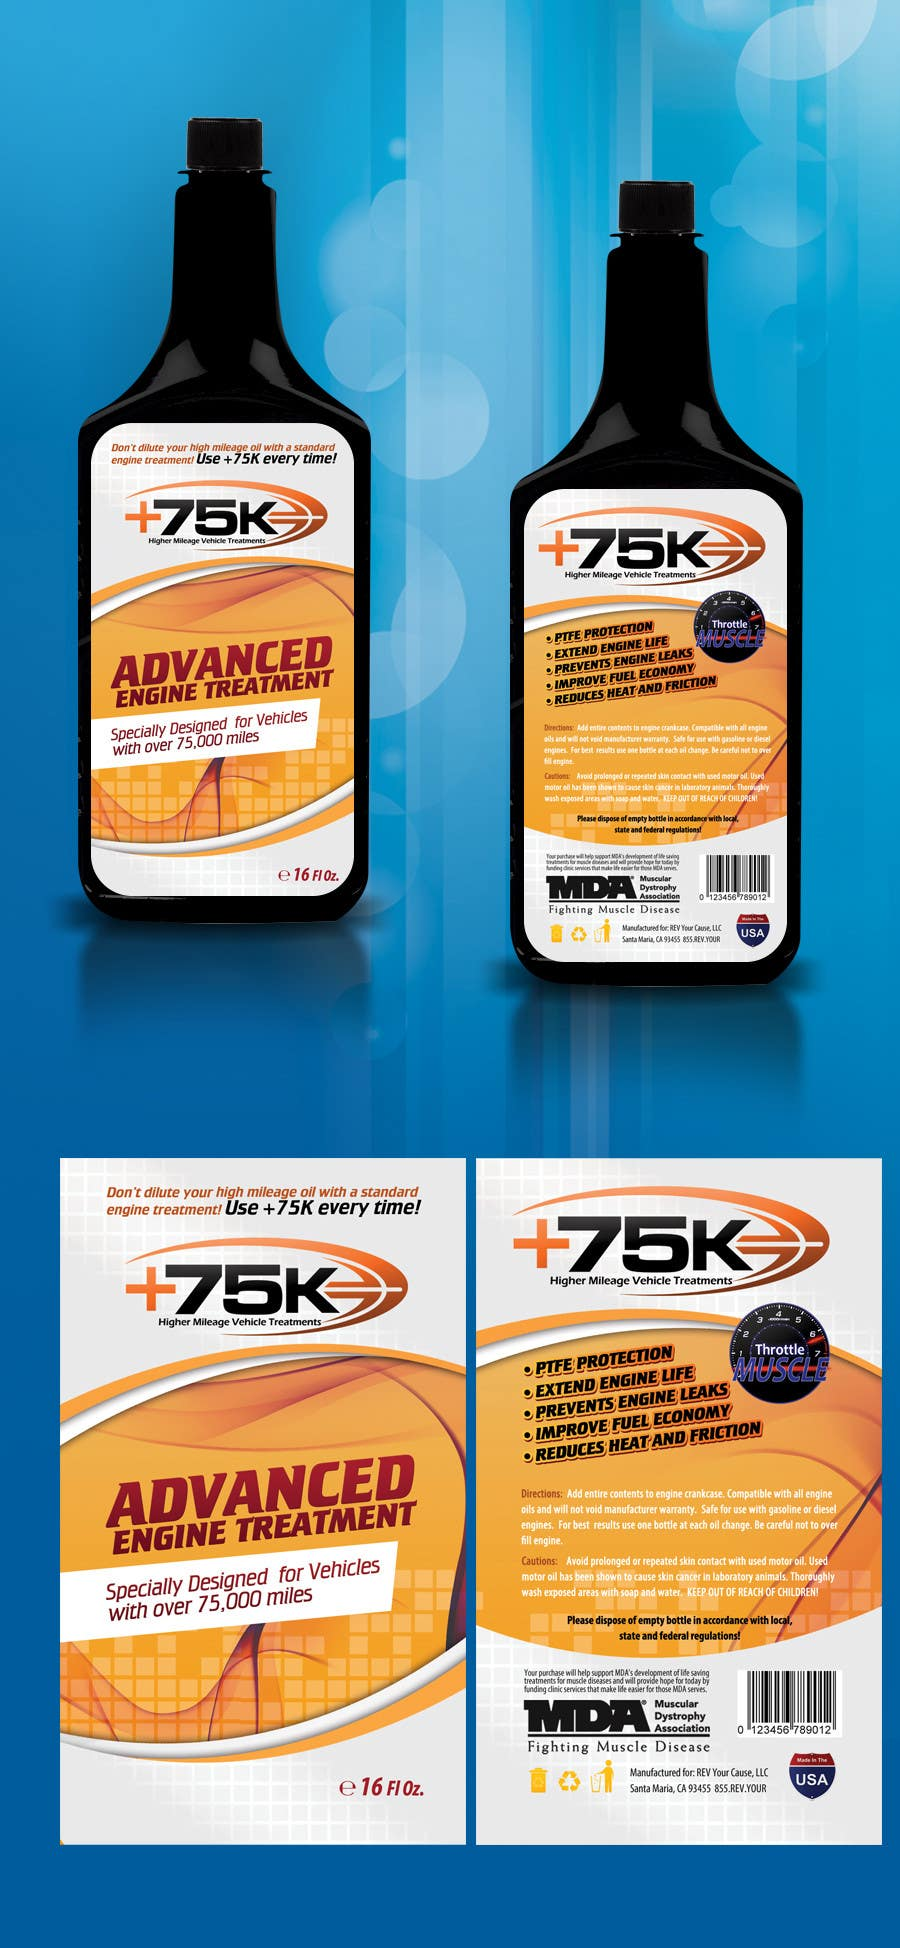 #94 for Print & Packaging Design for +75K High Mileage Engine Treatment by csoxa